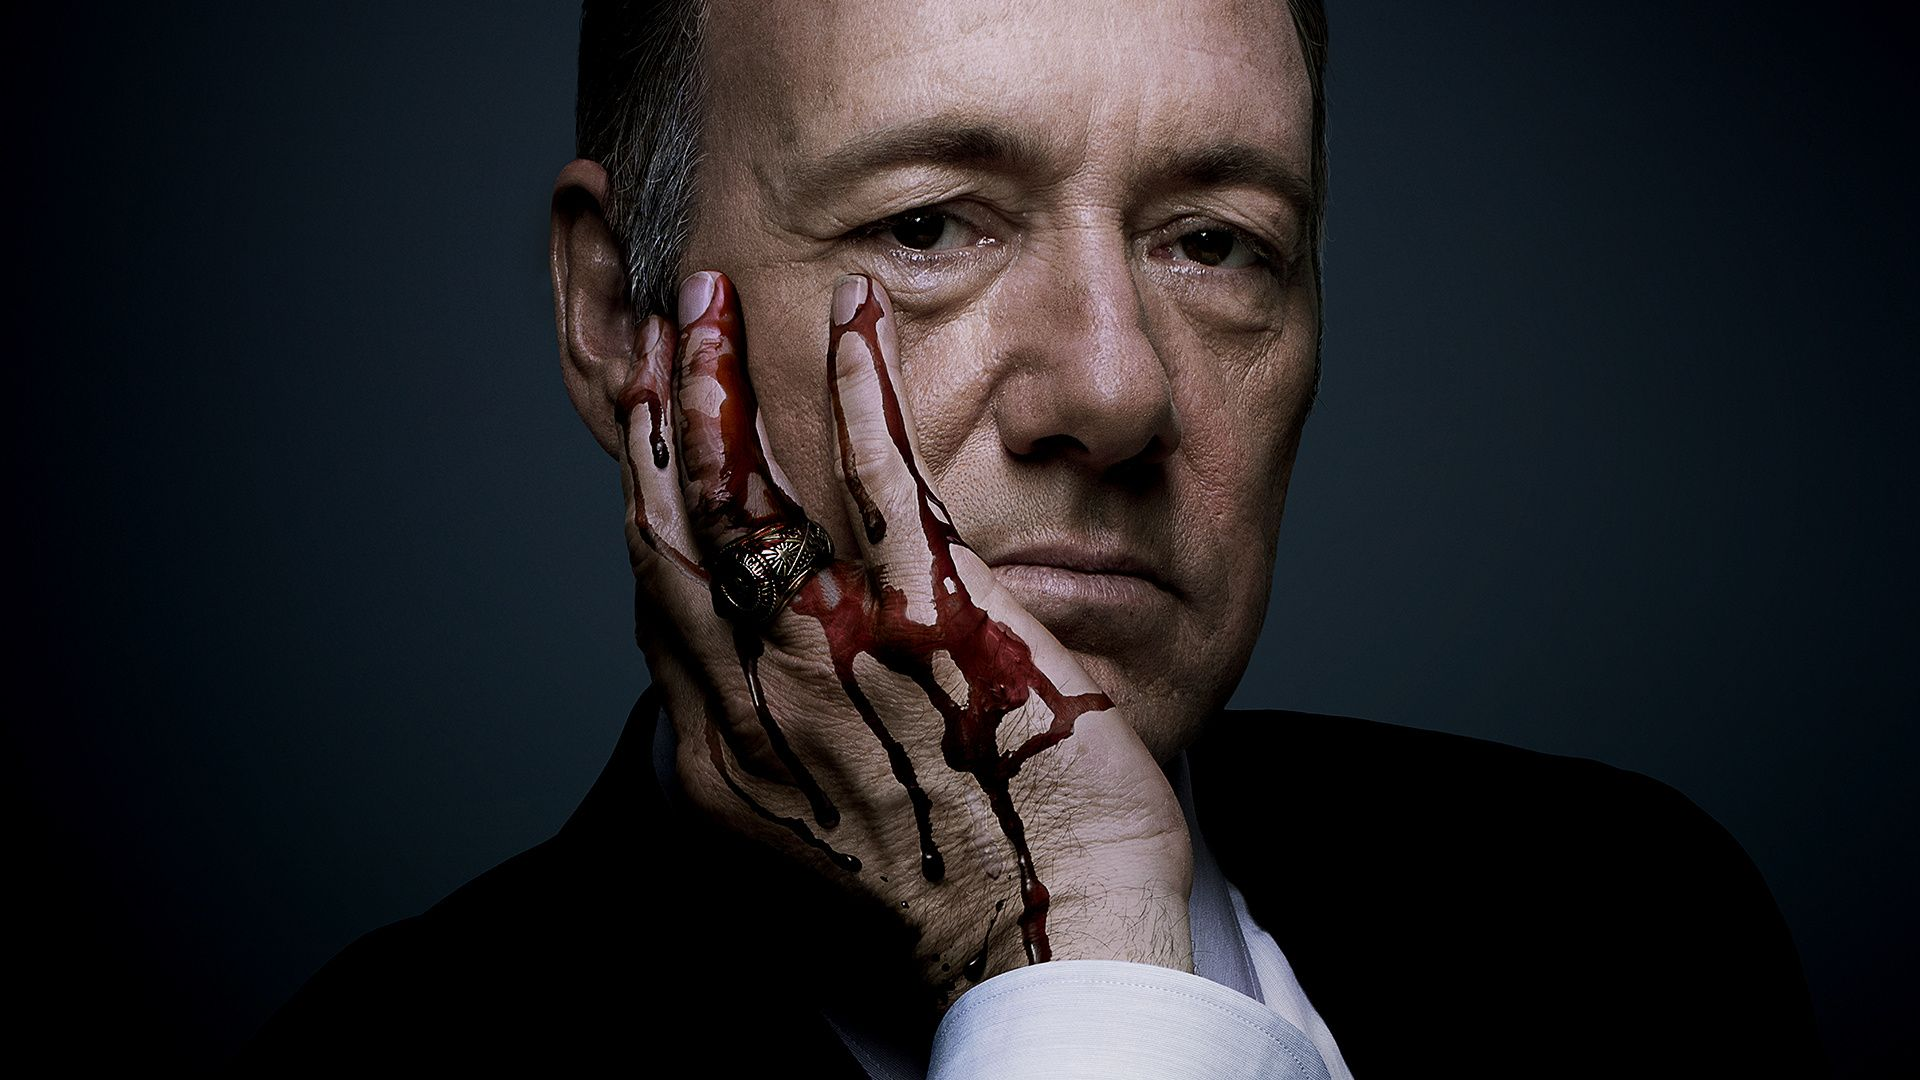 house-of-cards-temporada-2-kevin-spacey-robin-wright-slider